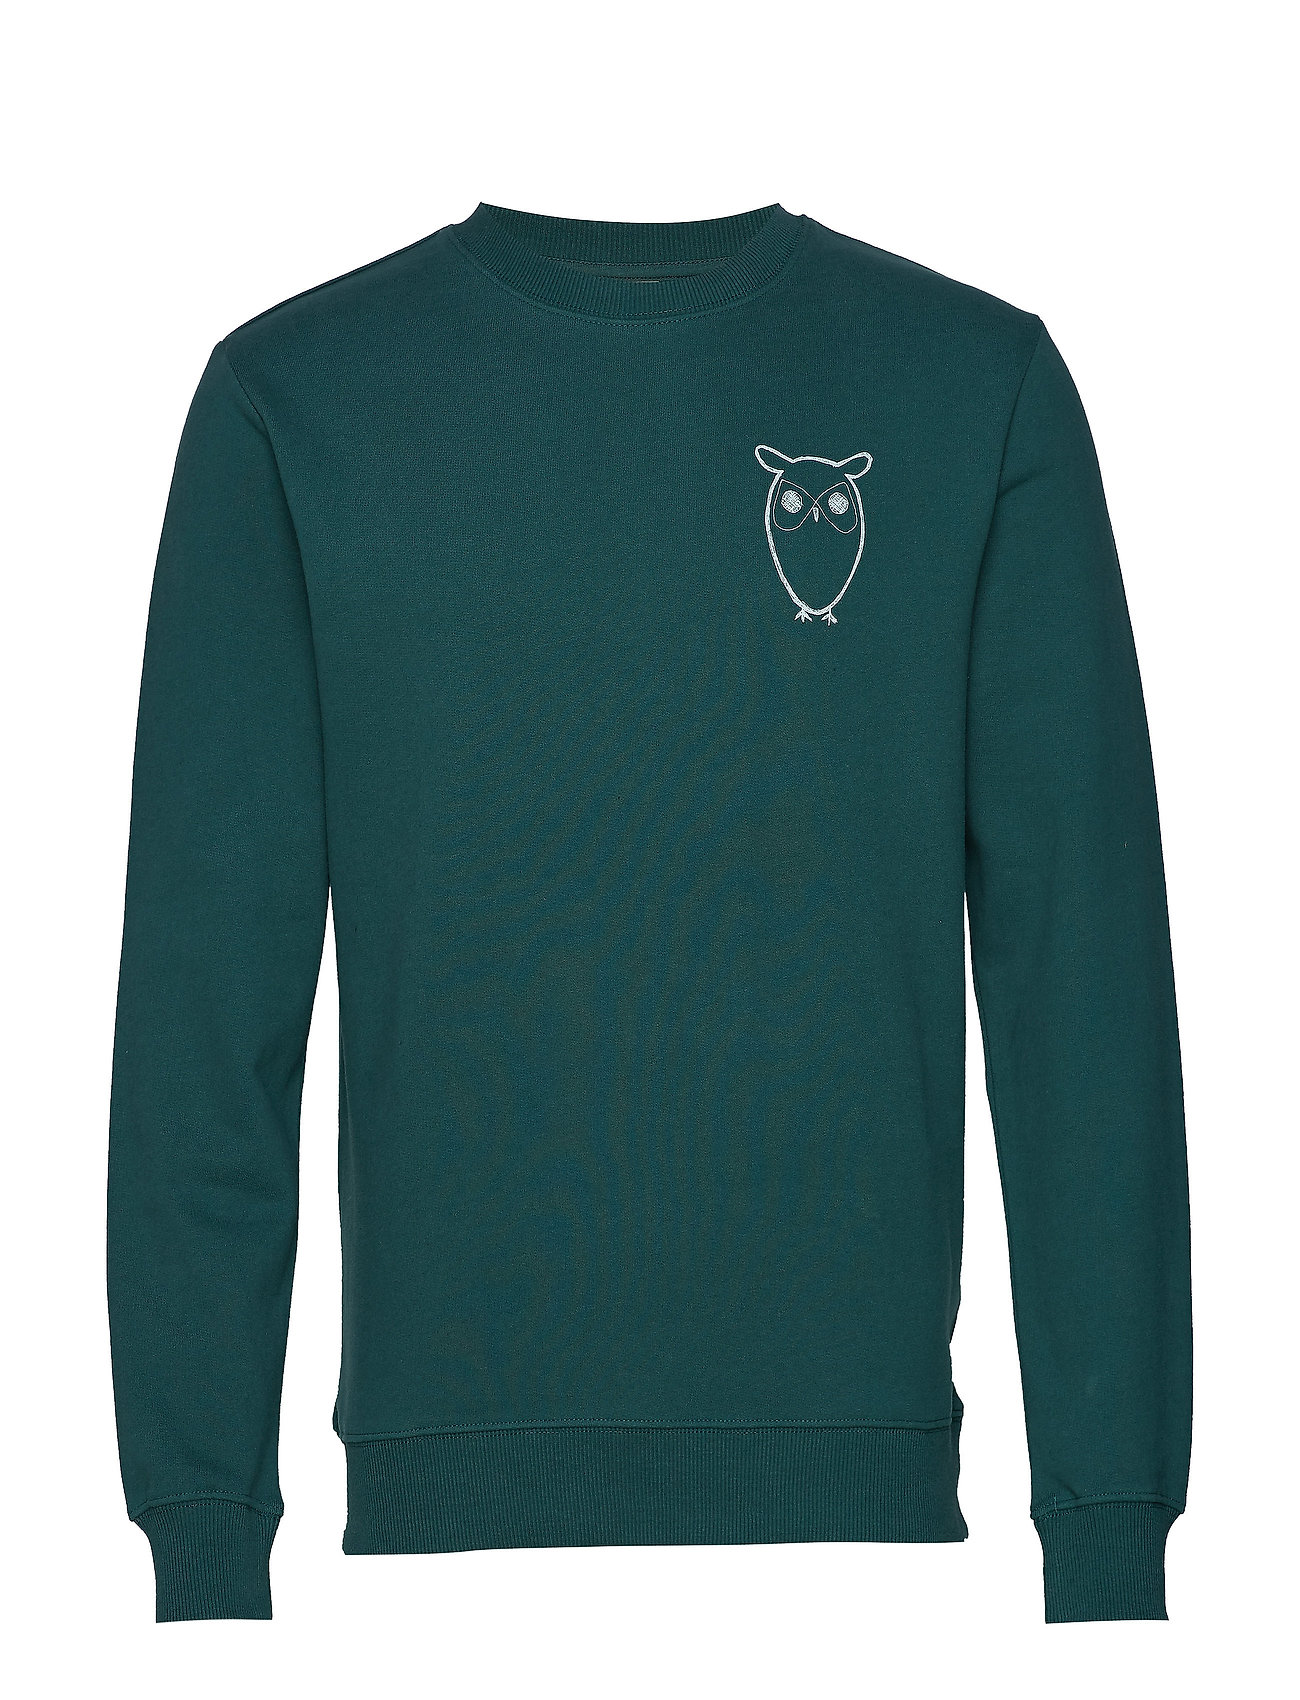 Owl Chest LogoGotsbistro With Cotton GreenKnowledge Apparel Sweat DWHYe2bE9I